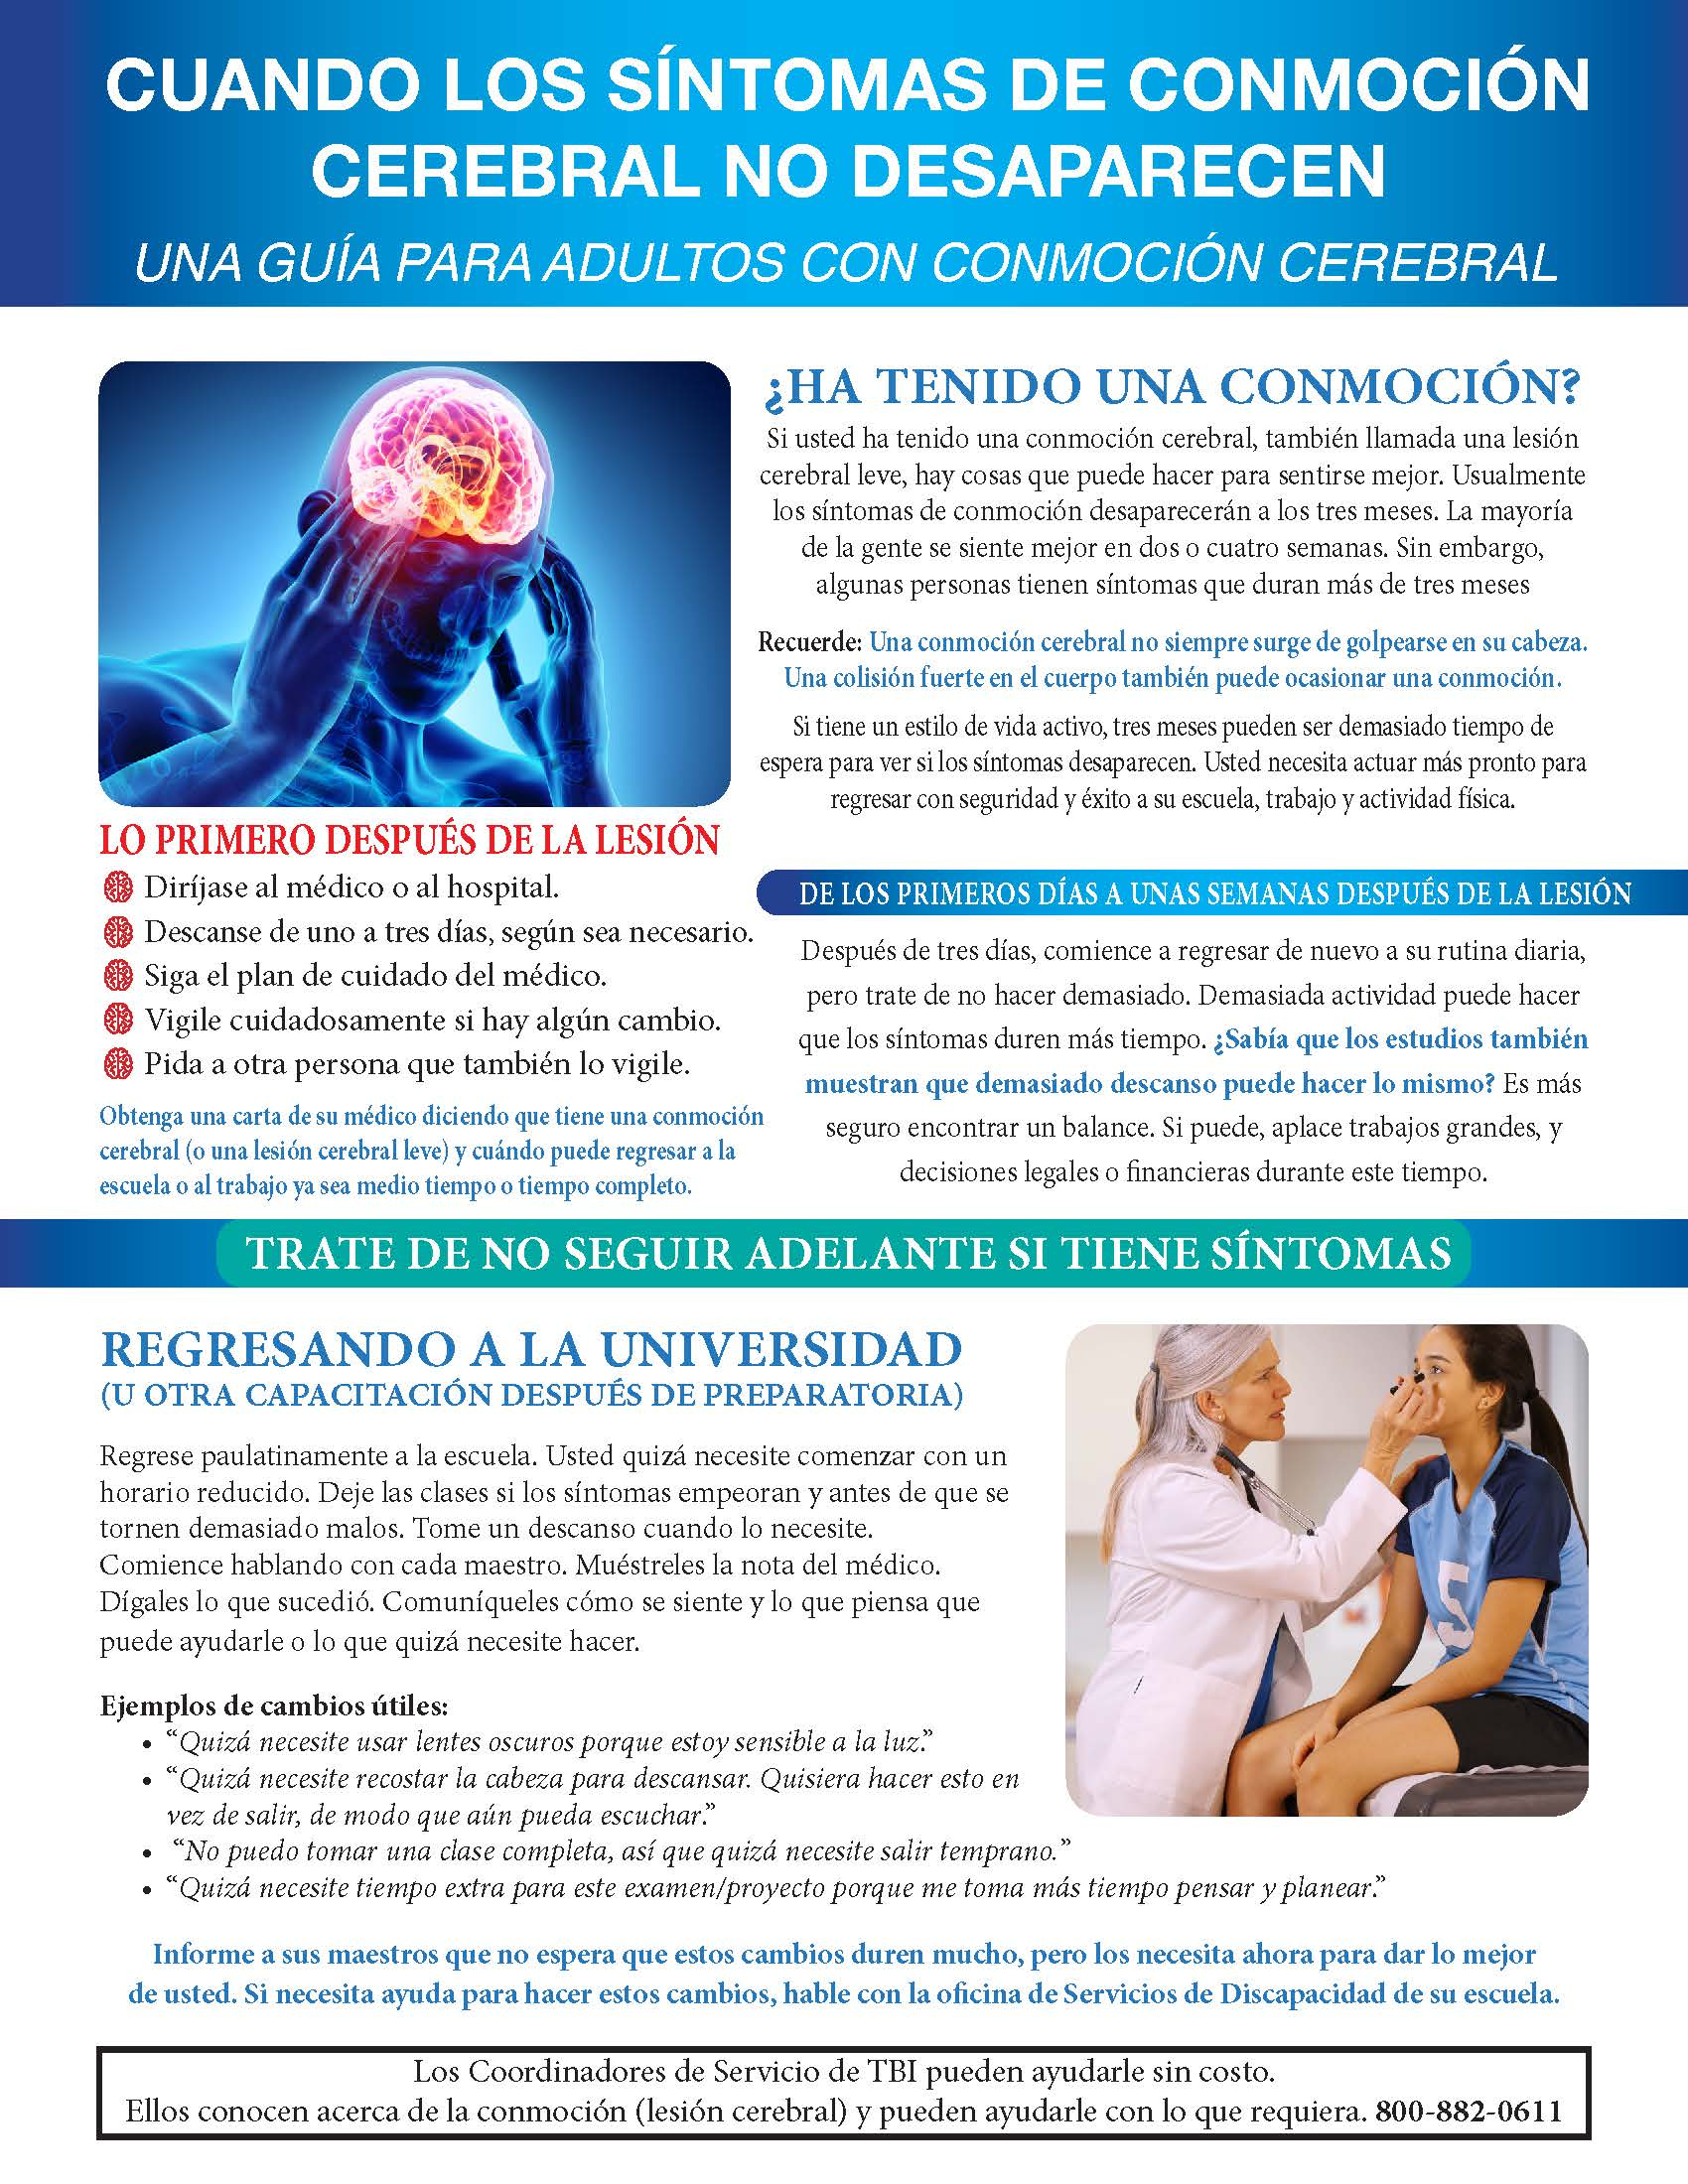 Spanish Adult Concussion Guide